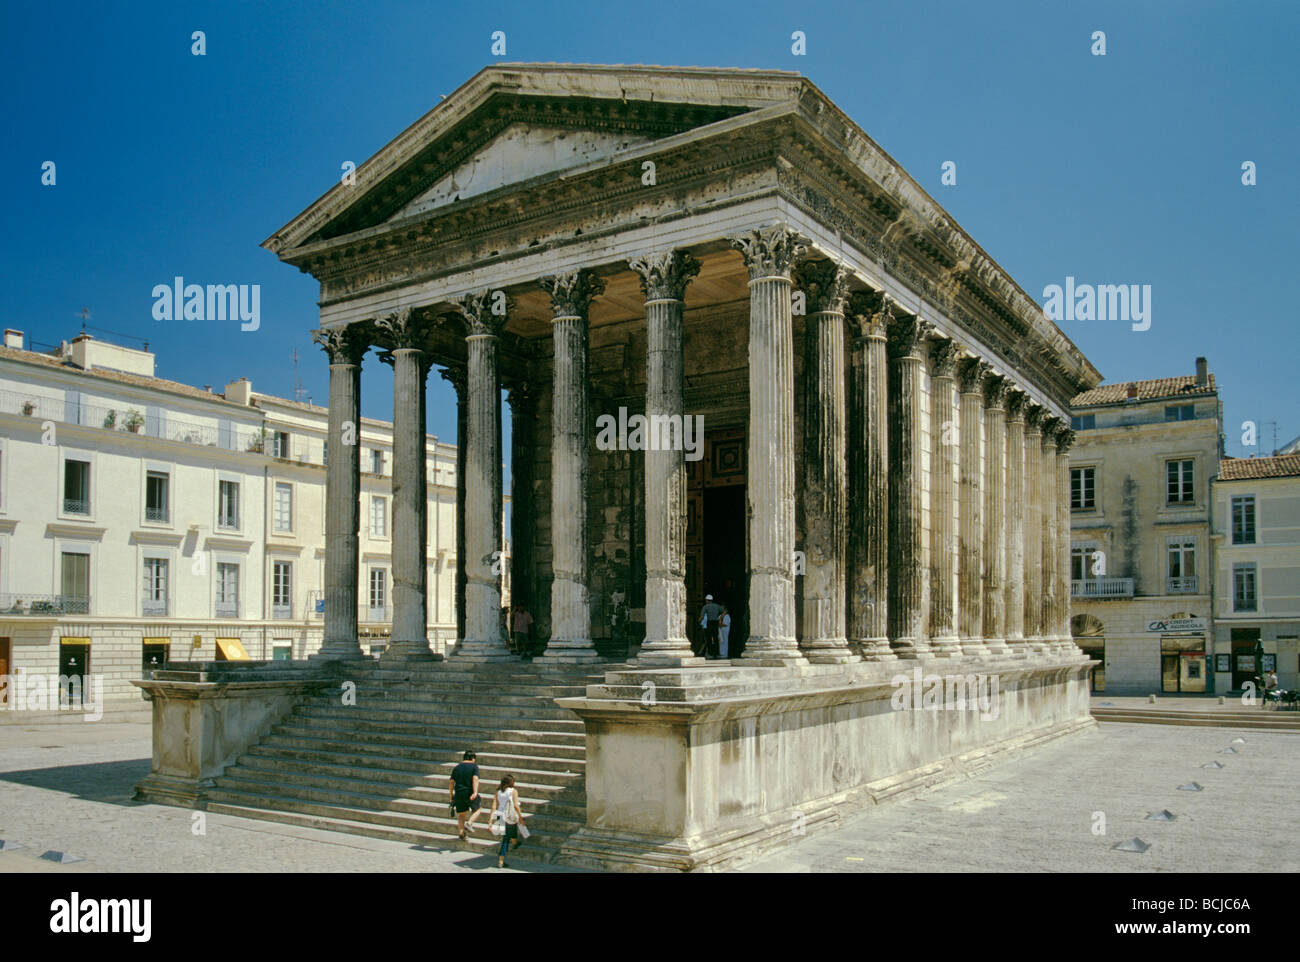 maison carree square house roman temple at nimes in